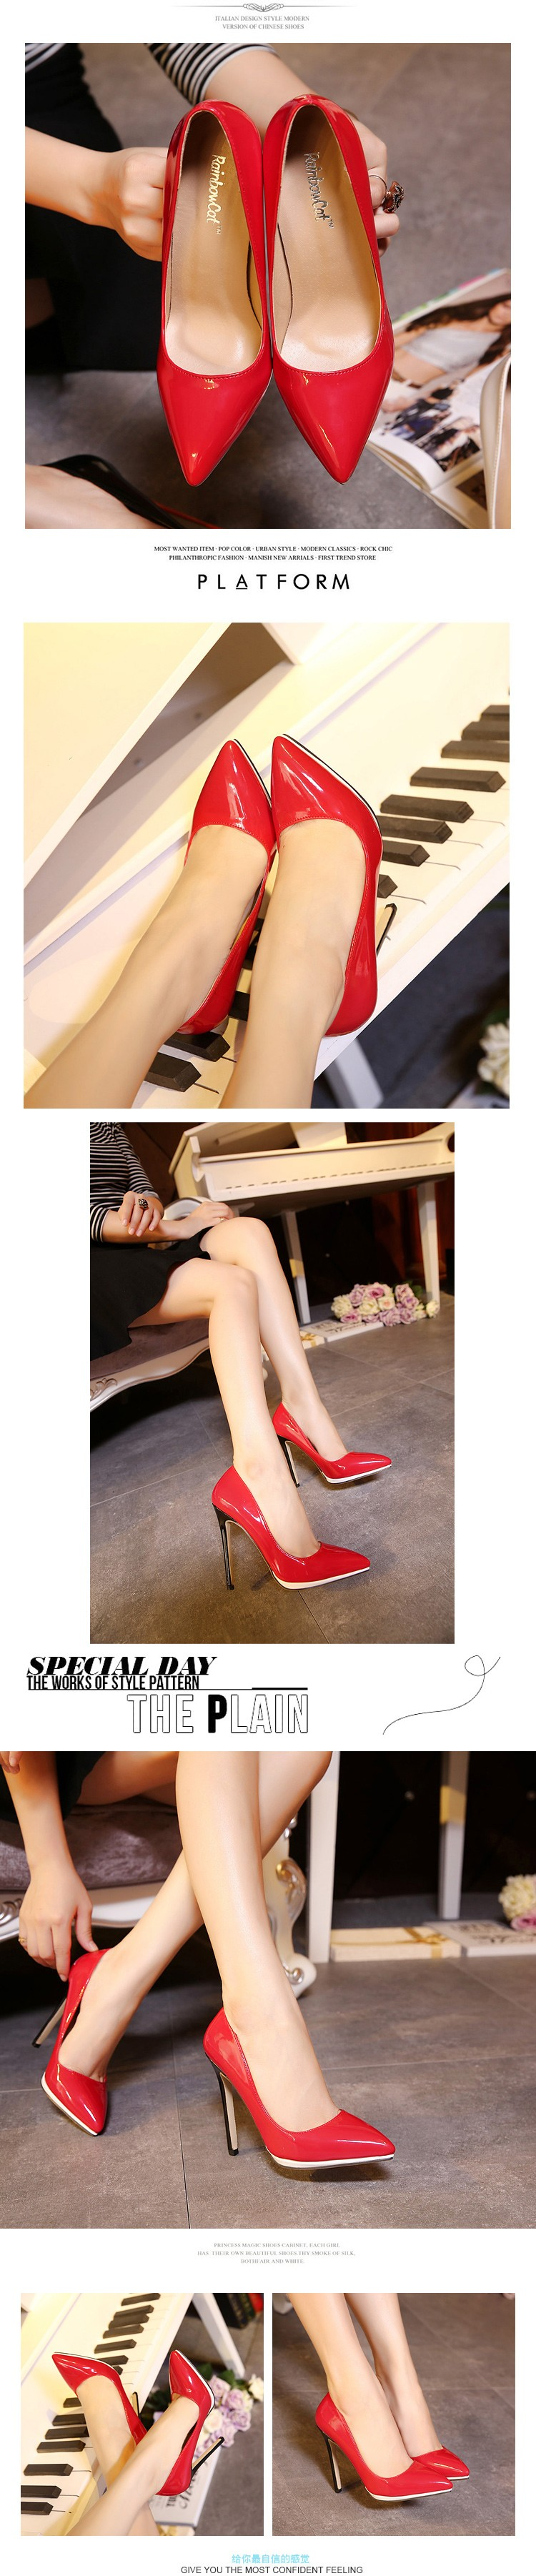 2016 New Women Pumps Thin High Heel Pumps Shoes For Women Pointed Toe Sexy Party Wedding Woman Shoes Red Black White ZX2.5